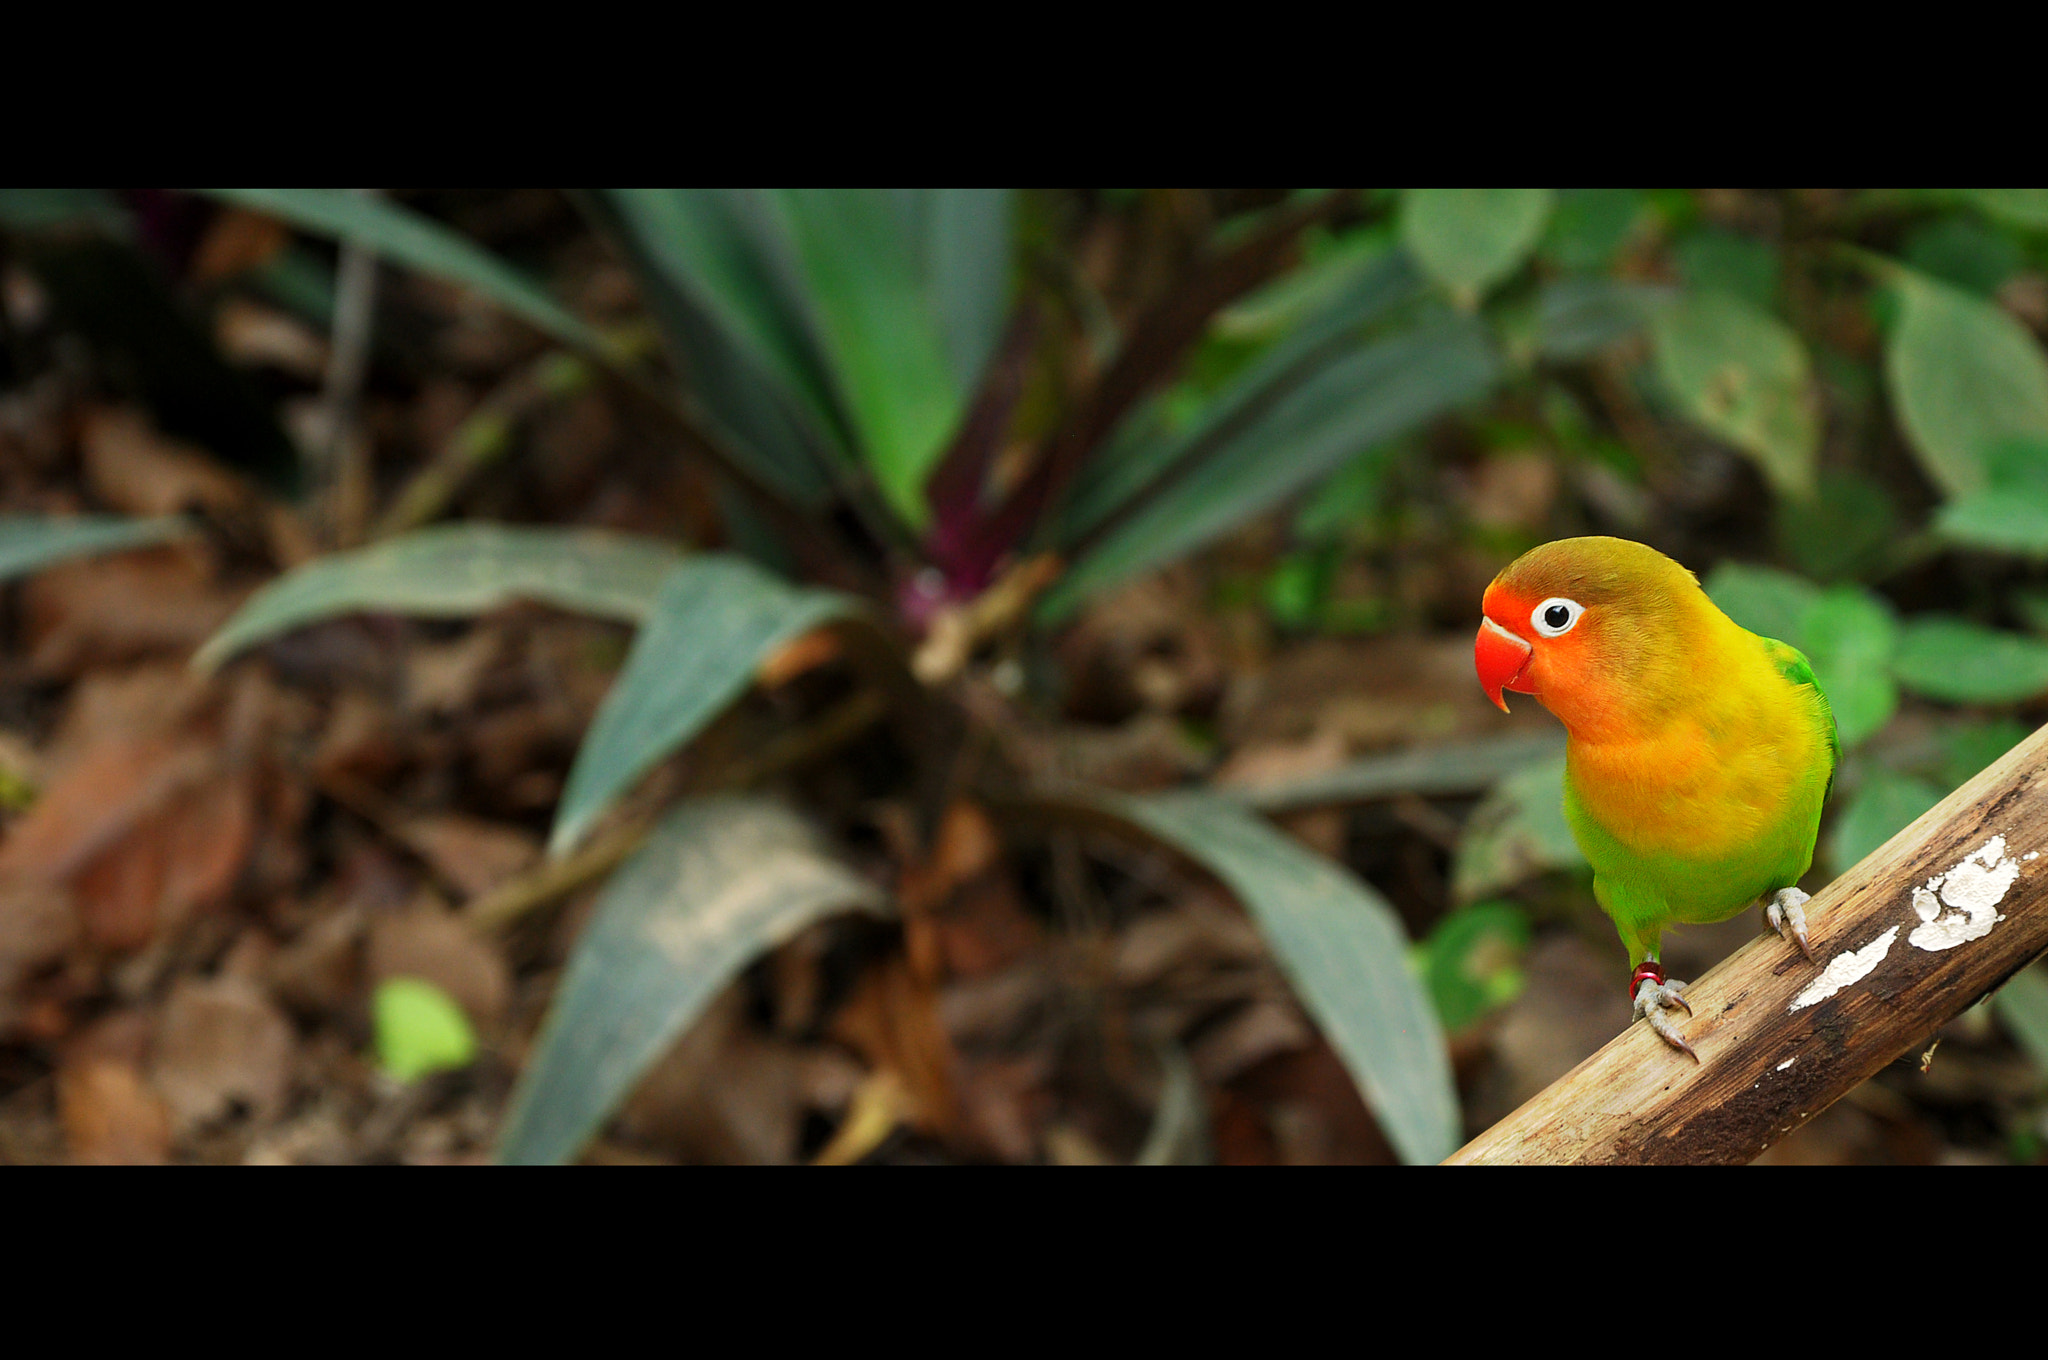 Photograph bird by Asyraaf Azahari on 500px